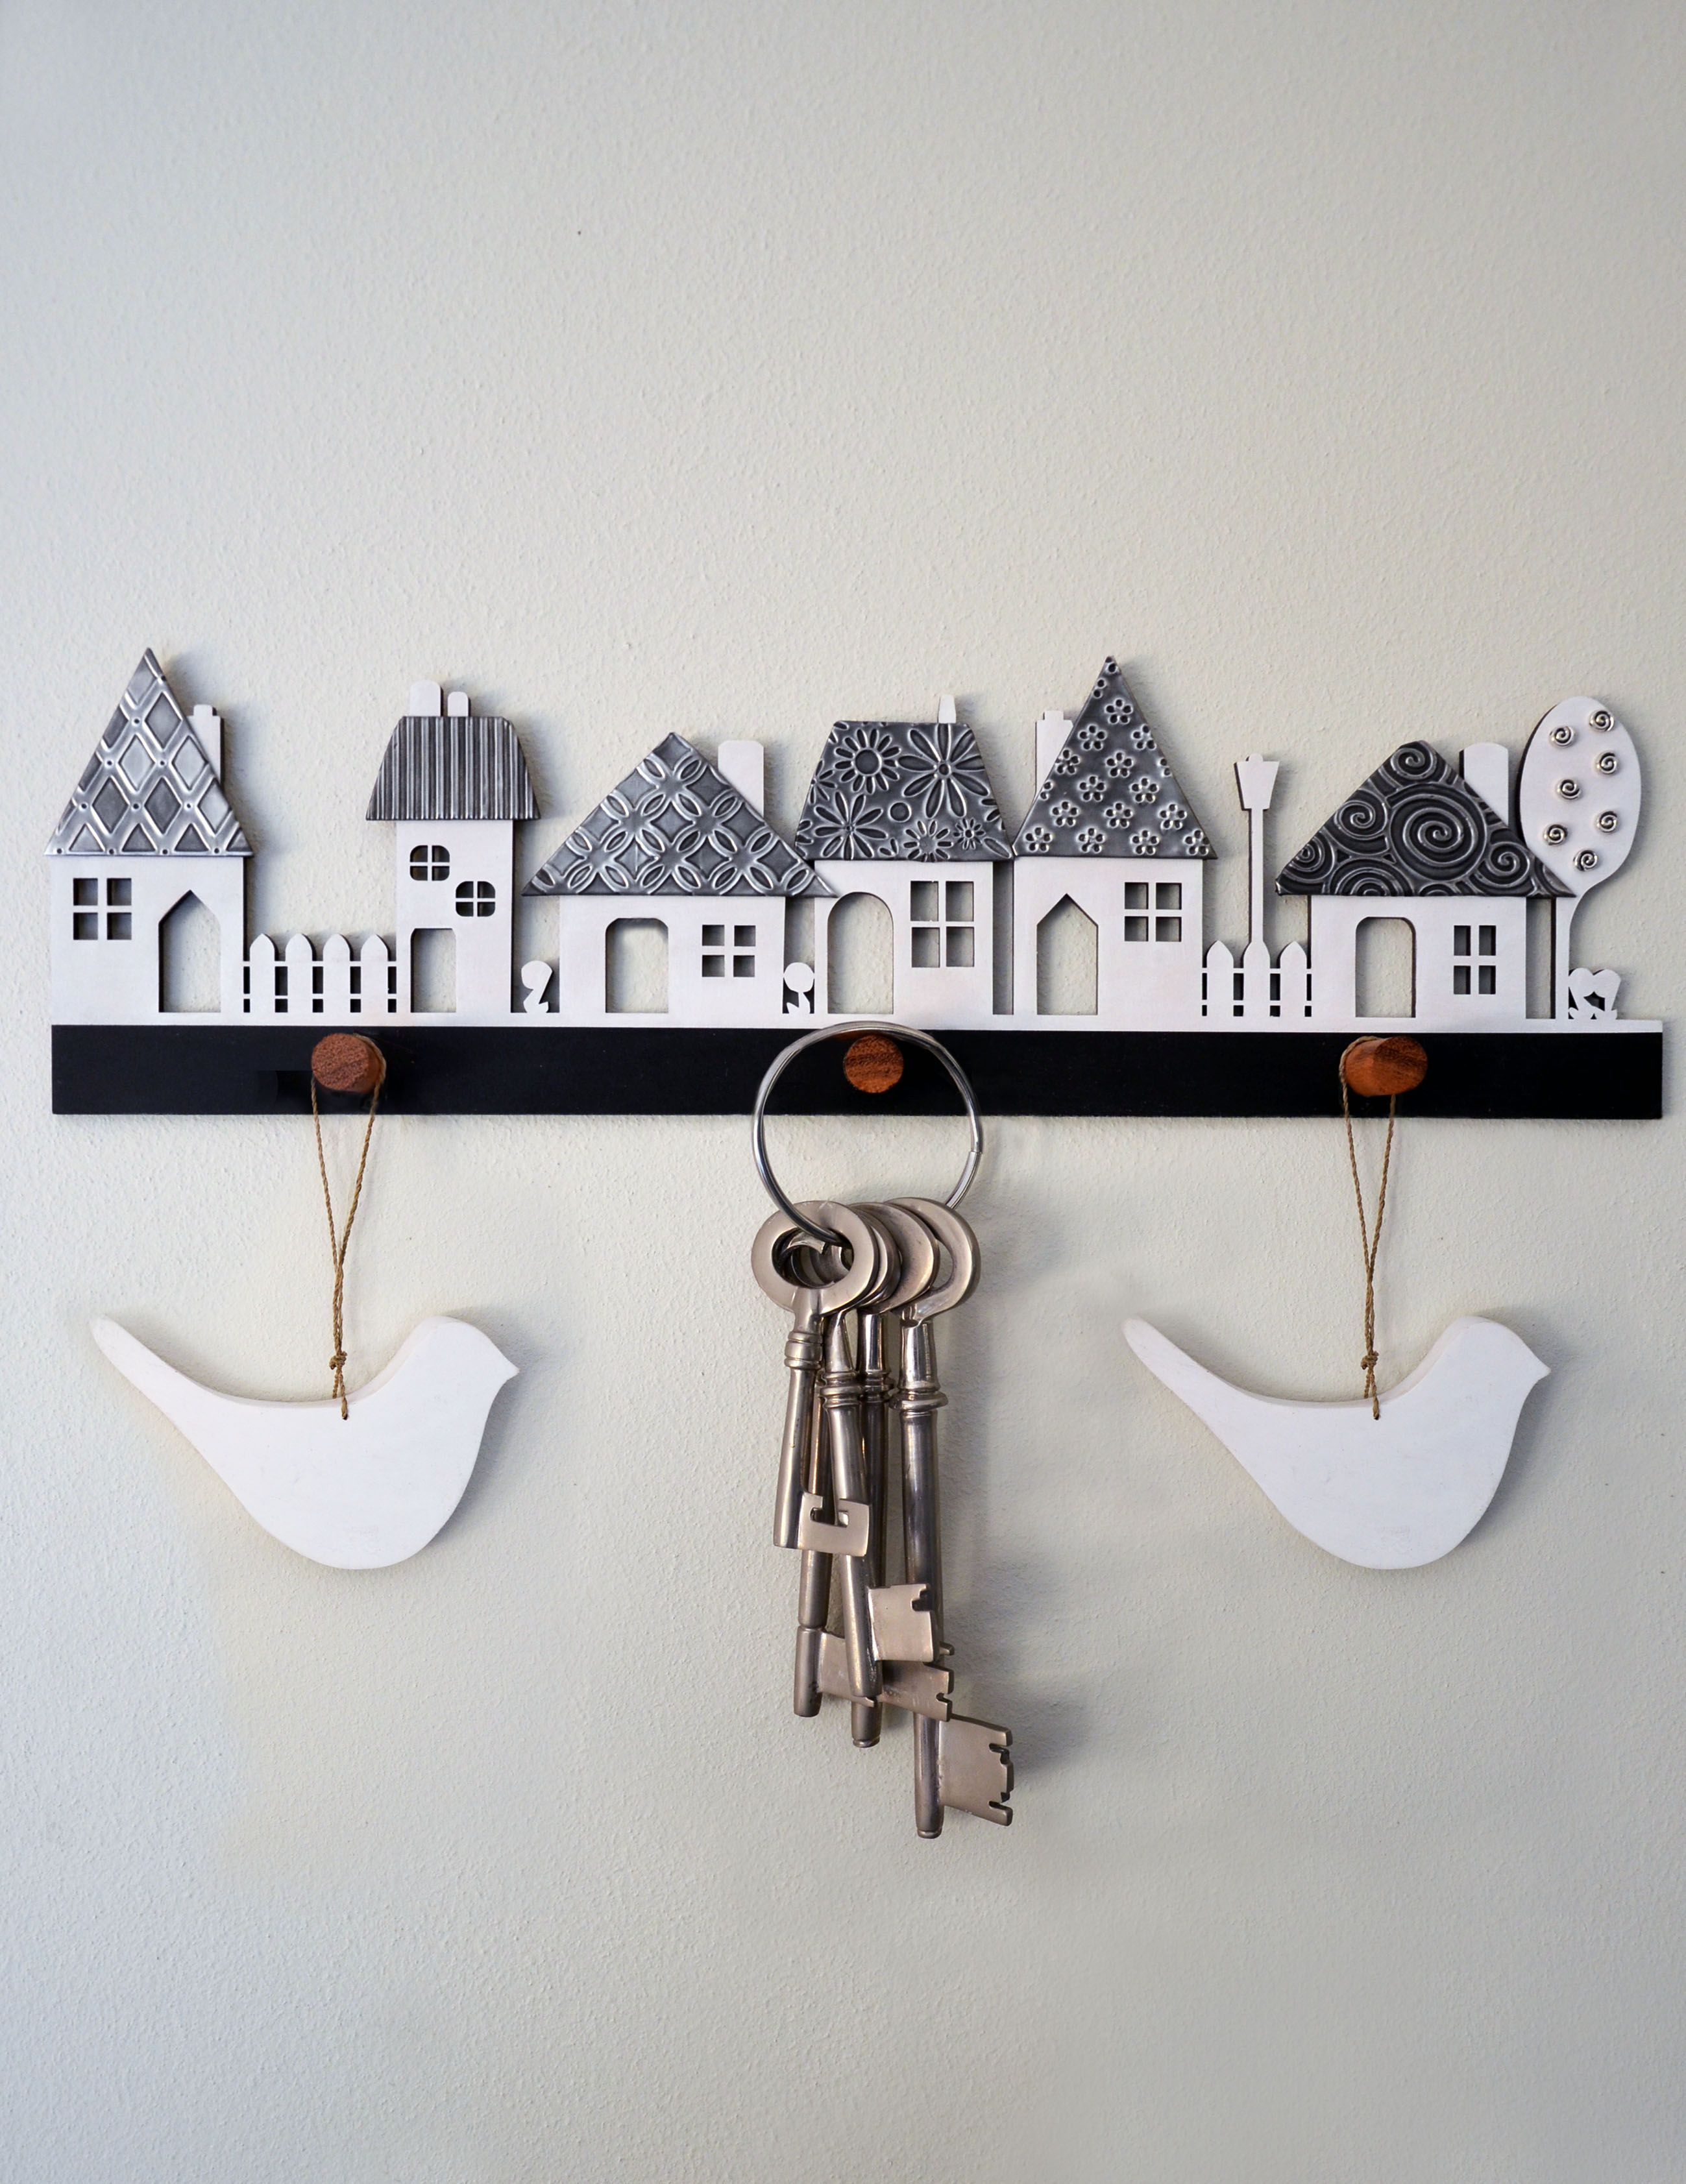 Village wooden cutout with pewter textured roofs kit form from